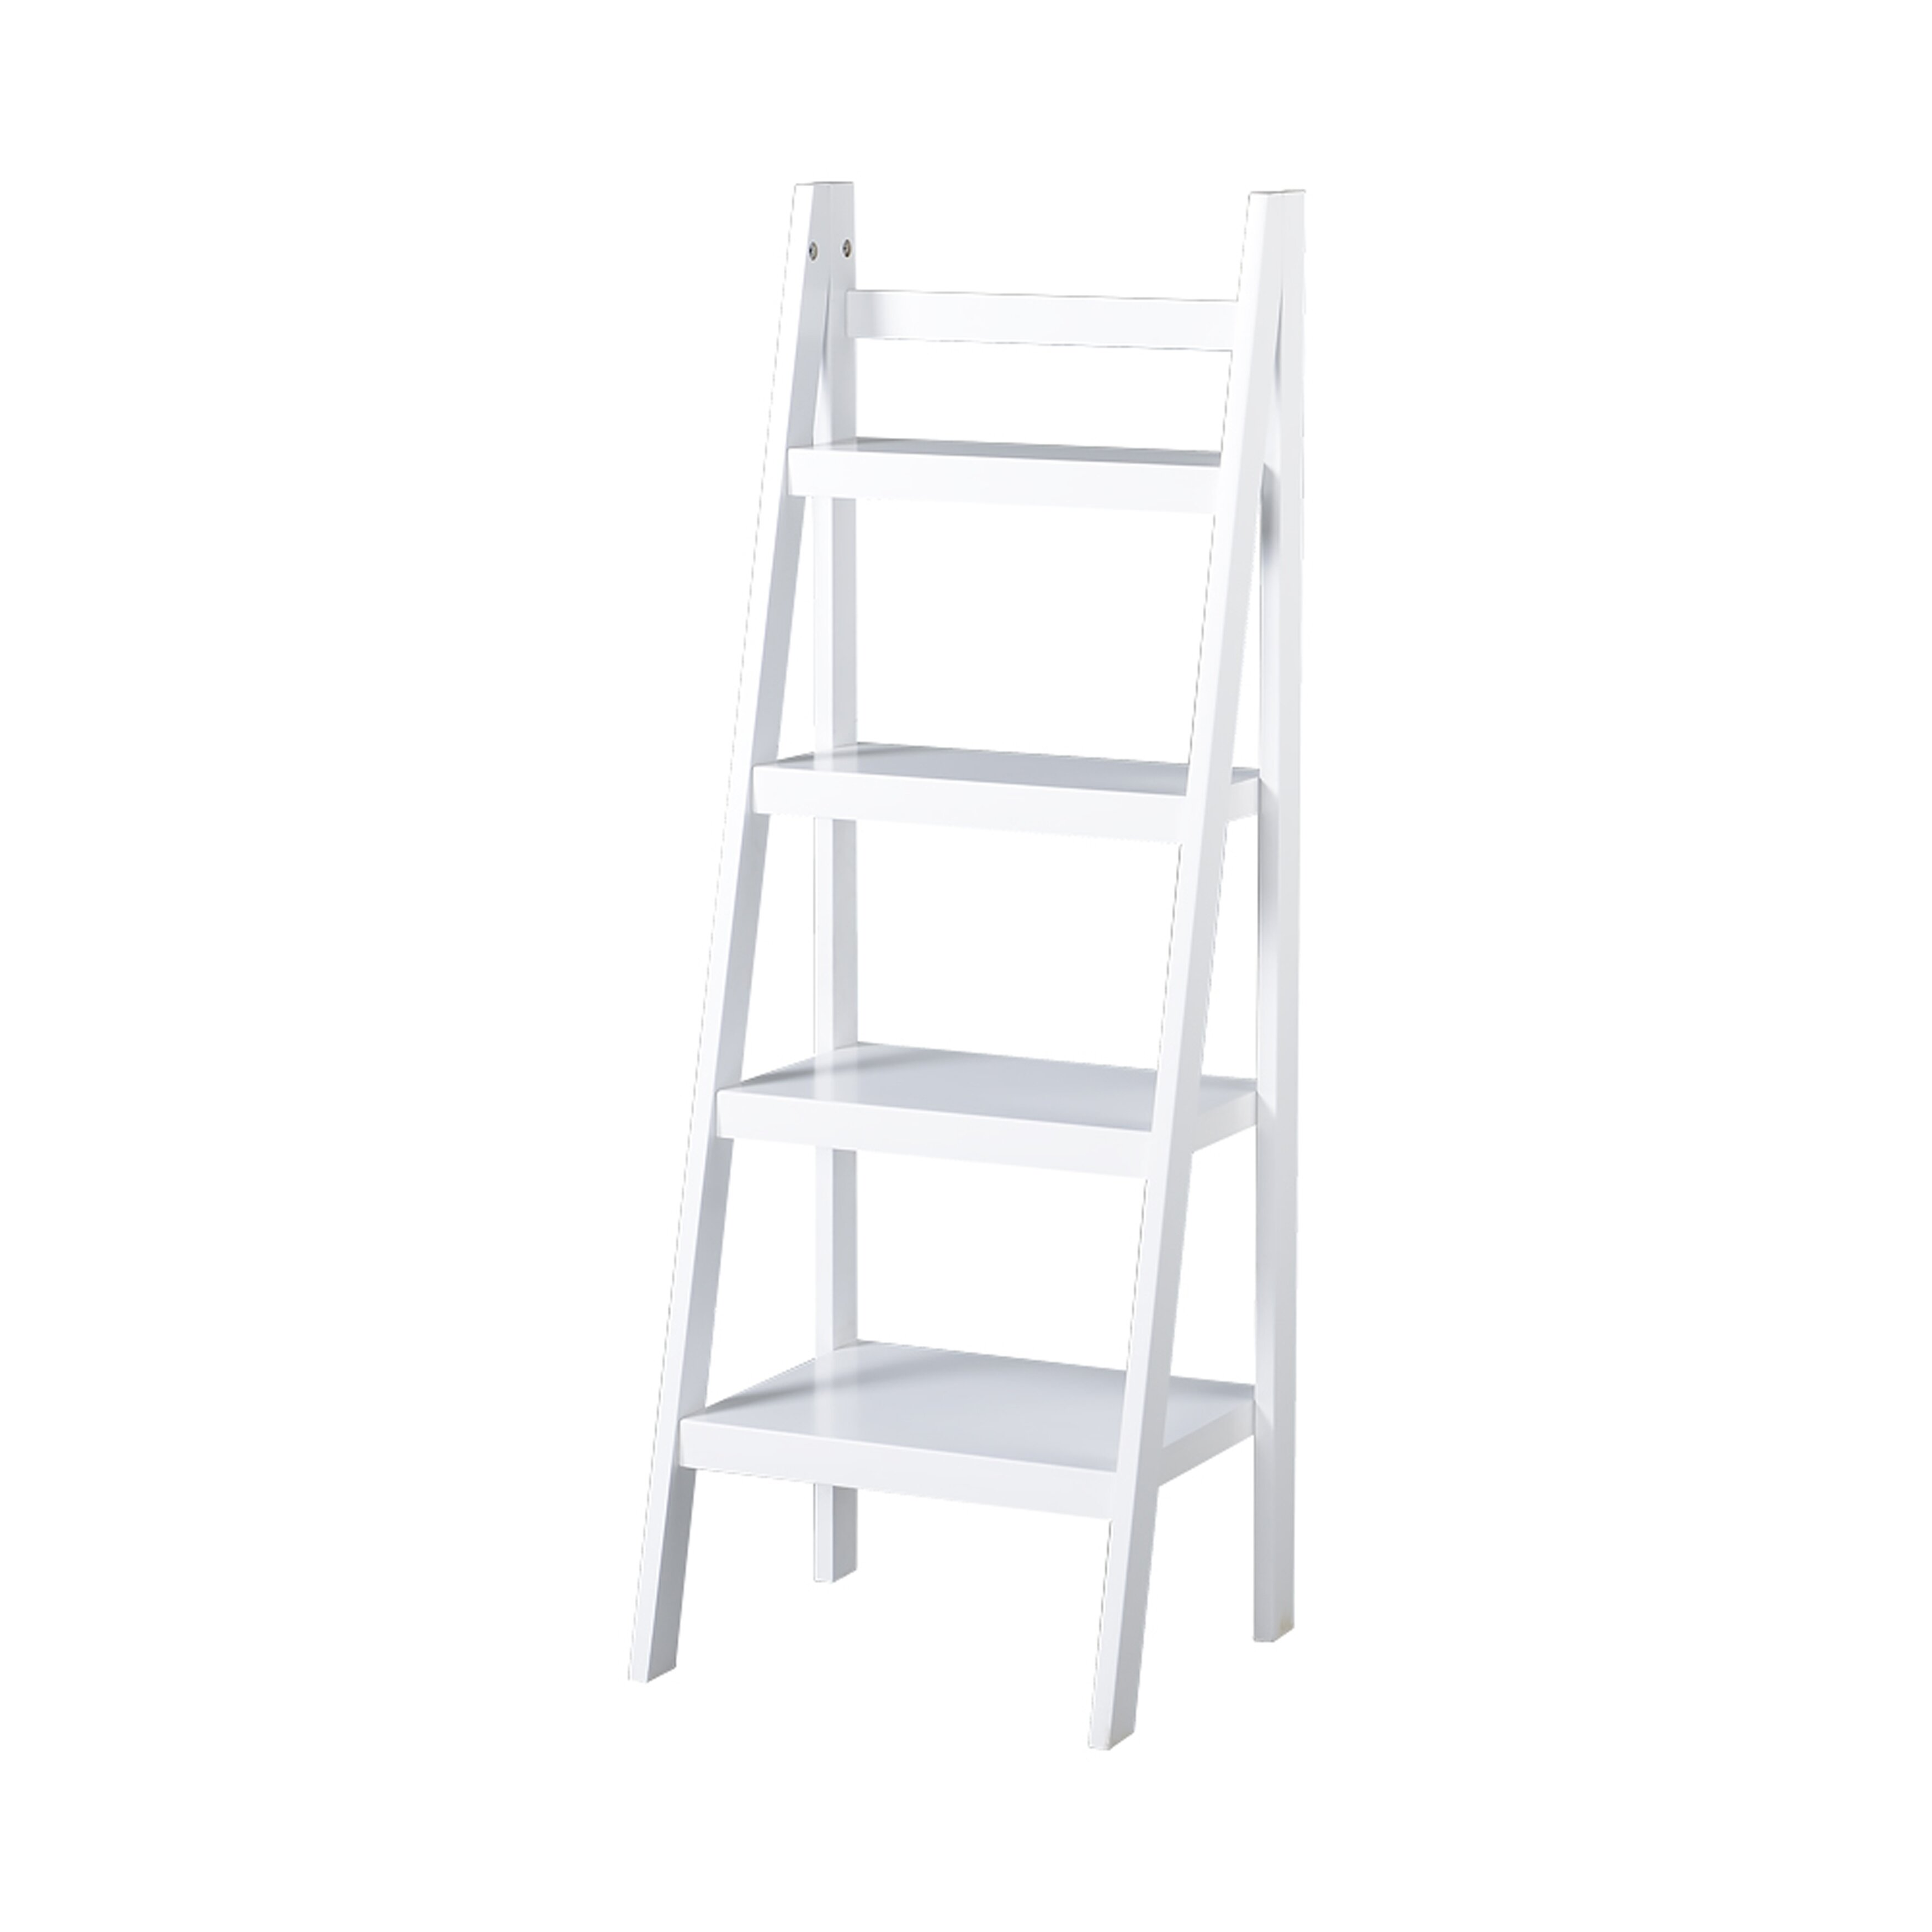 Cool Bookshelf Ideas 26 Unique Bookcases With Ladders For Sale Yvotube Com